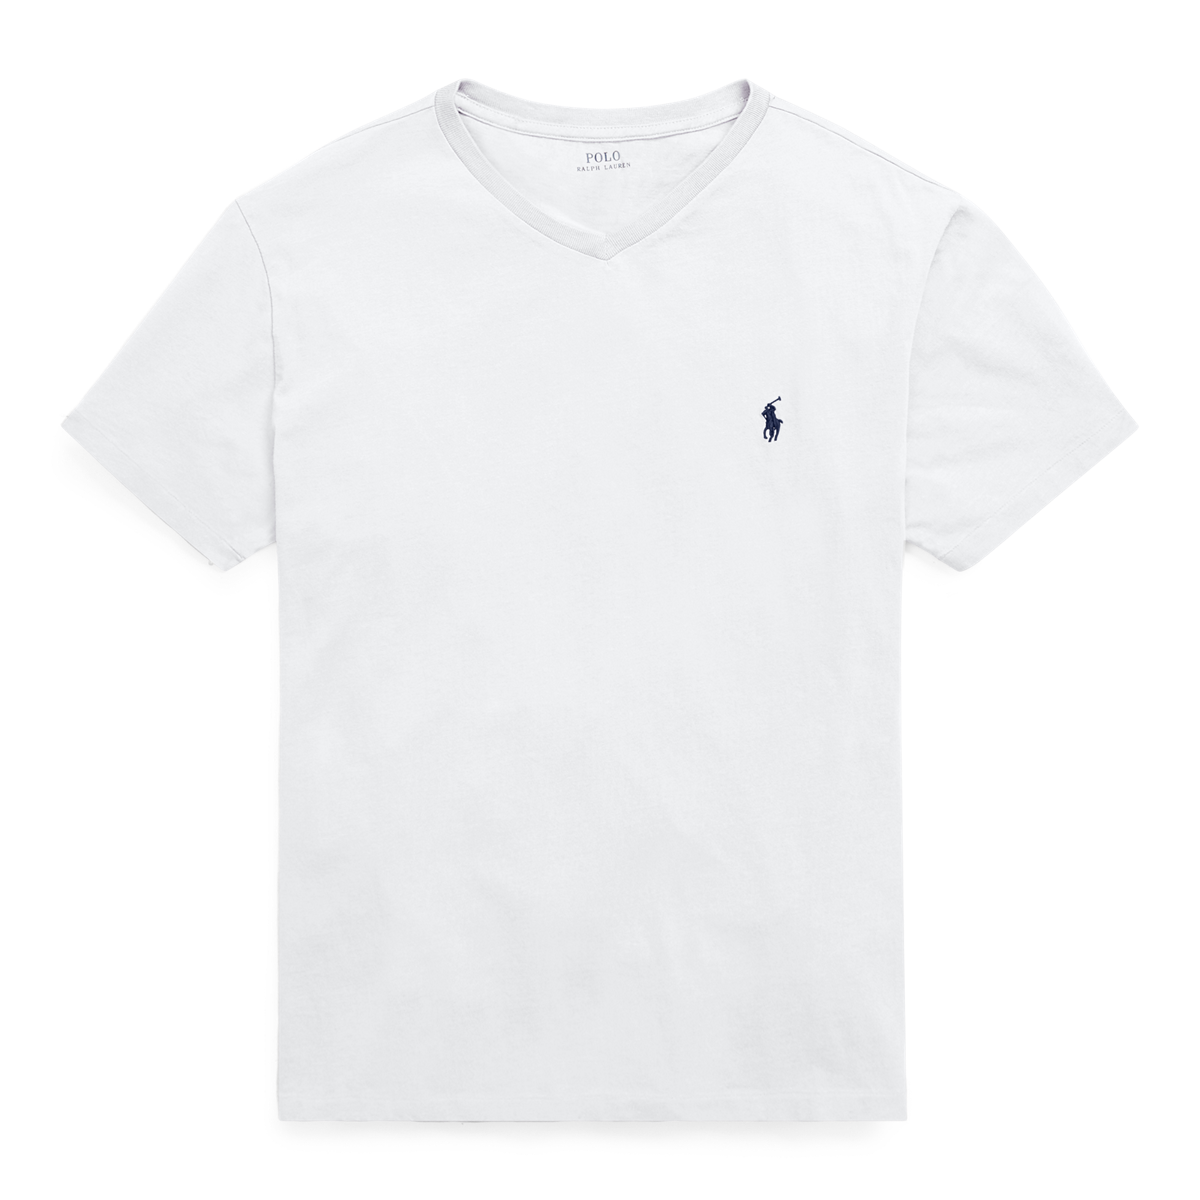 8bff0719 Men's Cotton Jersey Polo V-Neck T-Shirt | Ralph Lauren